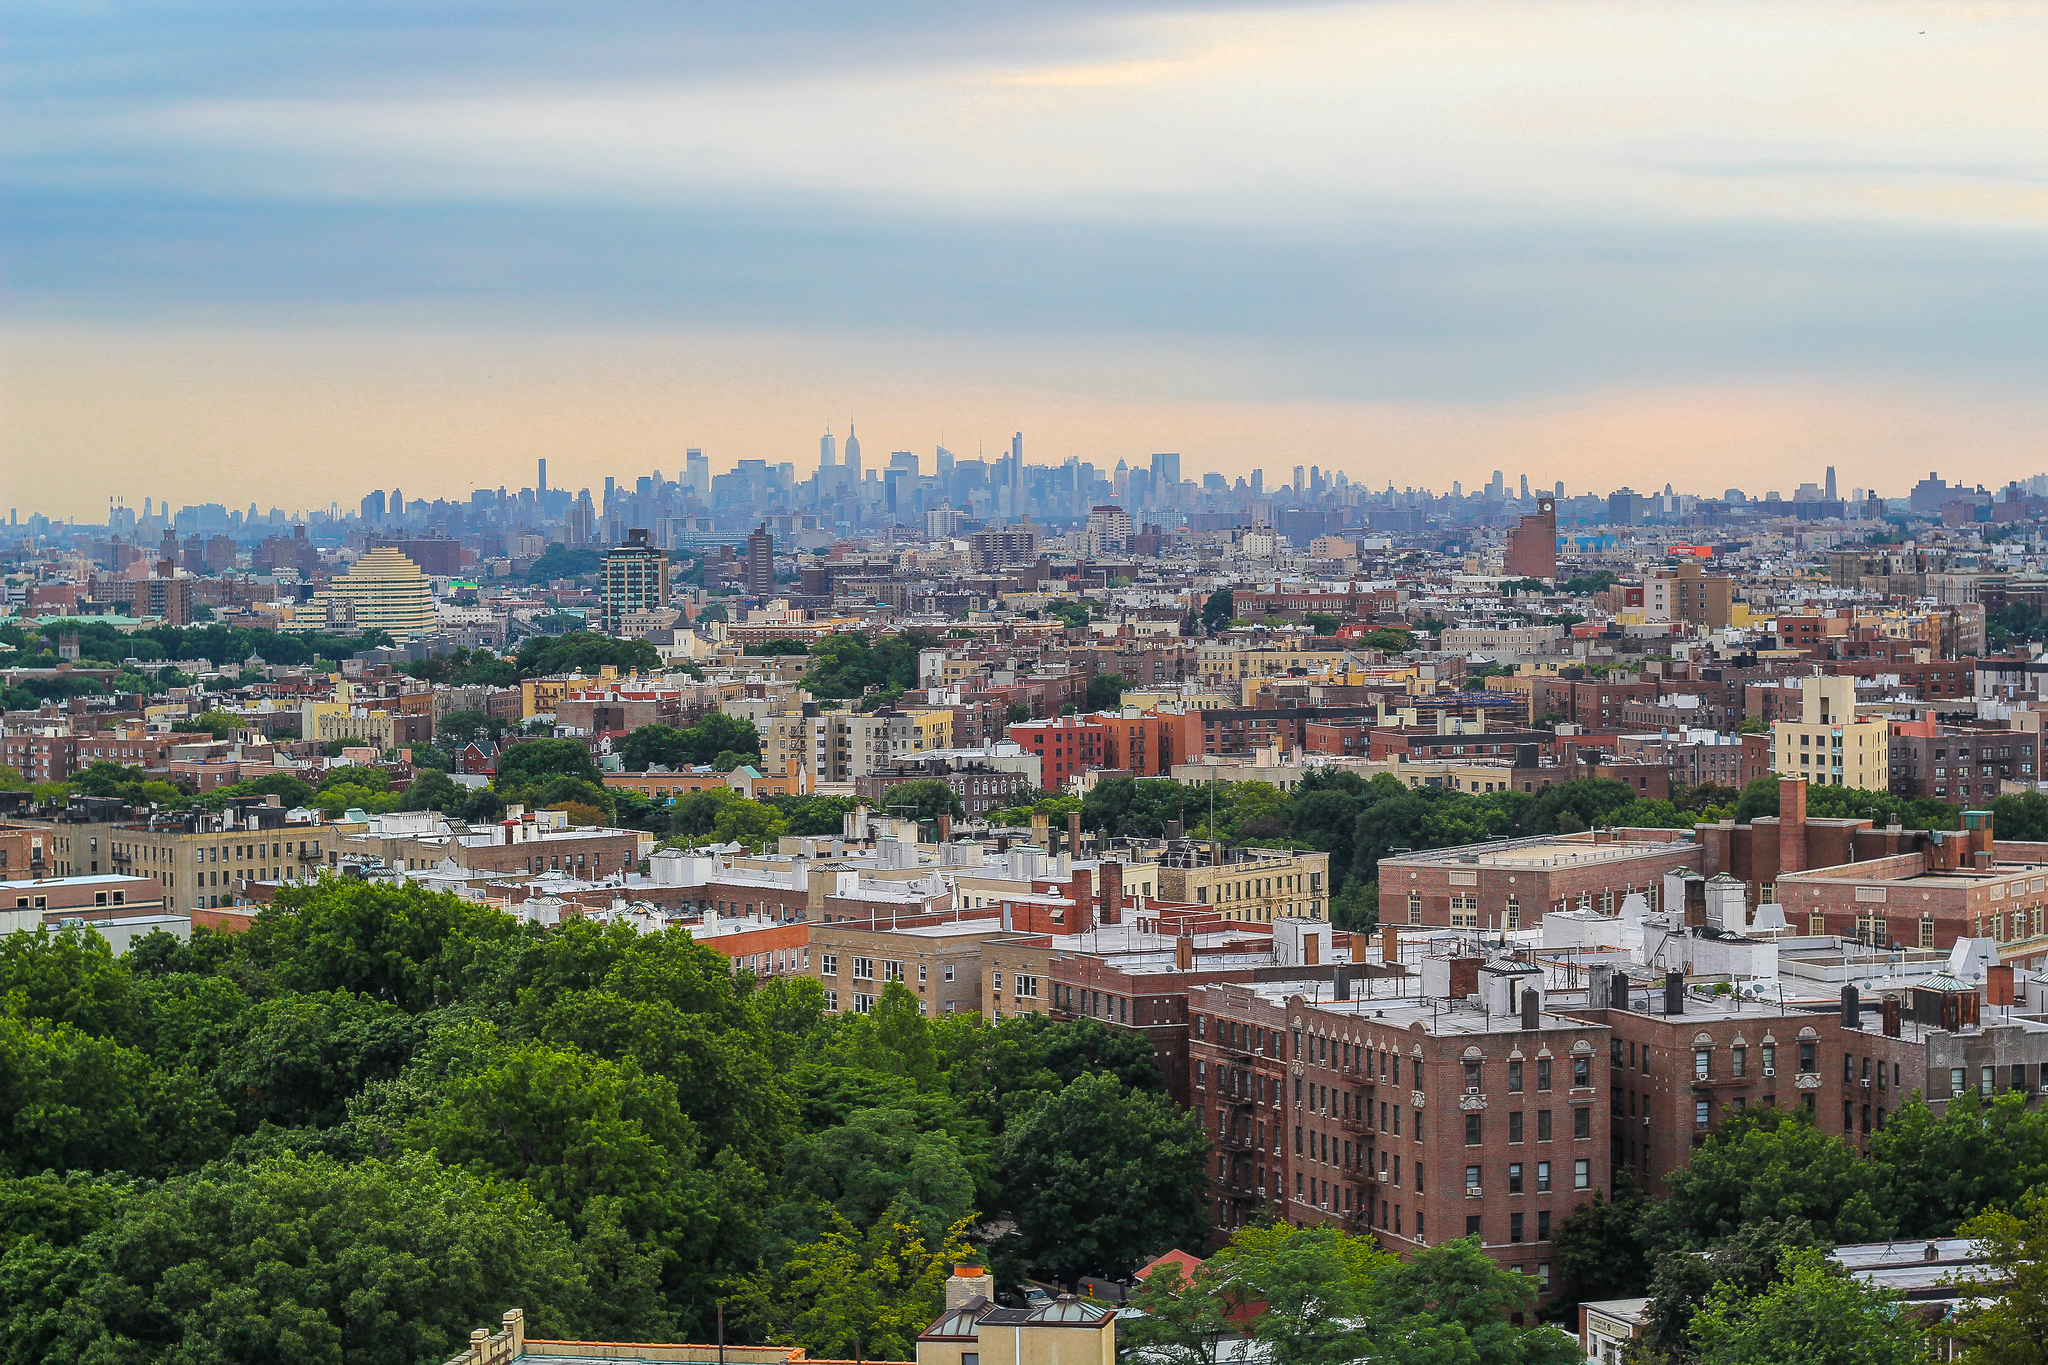 With most approved residential units in NYC, the Bronx